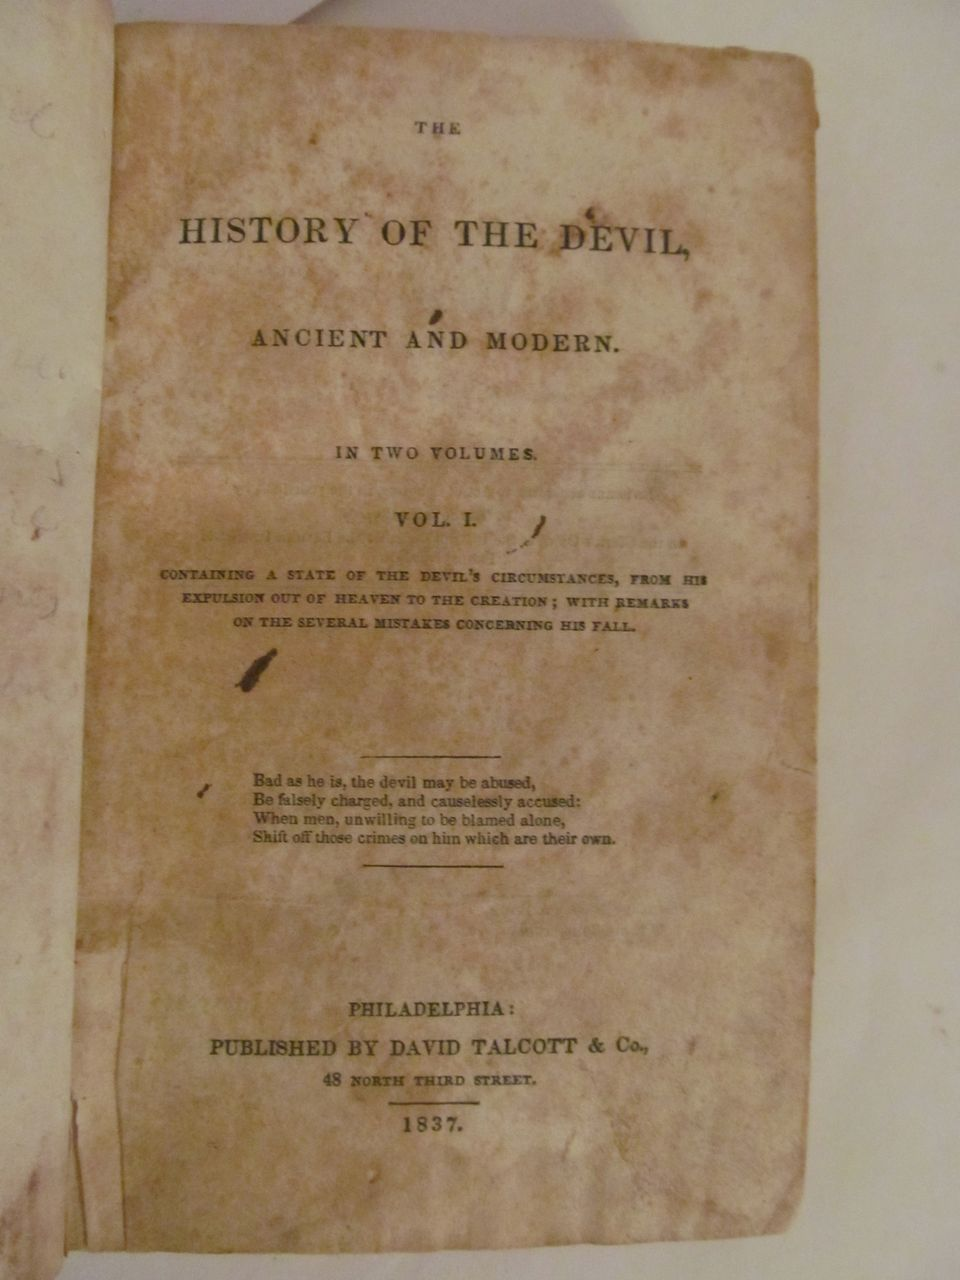 1837 The History of the Devil, 2 Volumes, David Talcott & Co Publishers